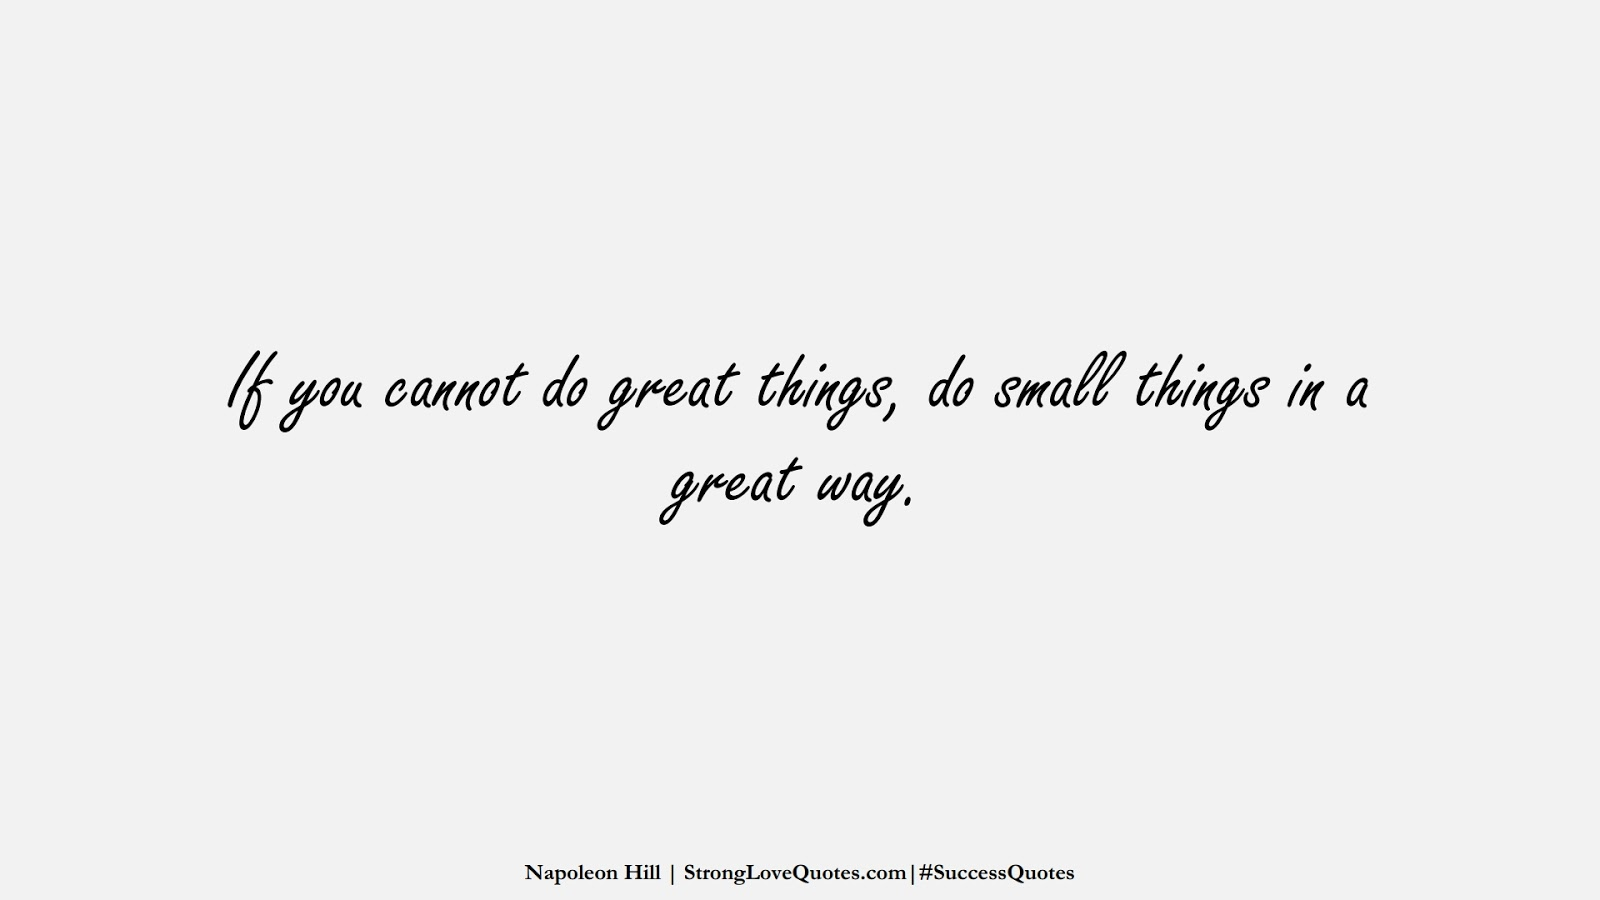 If you cannot do great things, do small things in a great way. (Napoleon Hill);  #SuccessQuotes